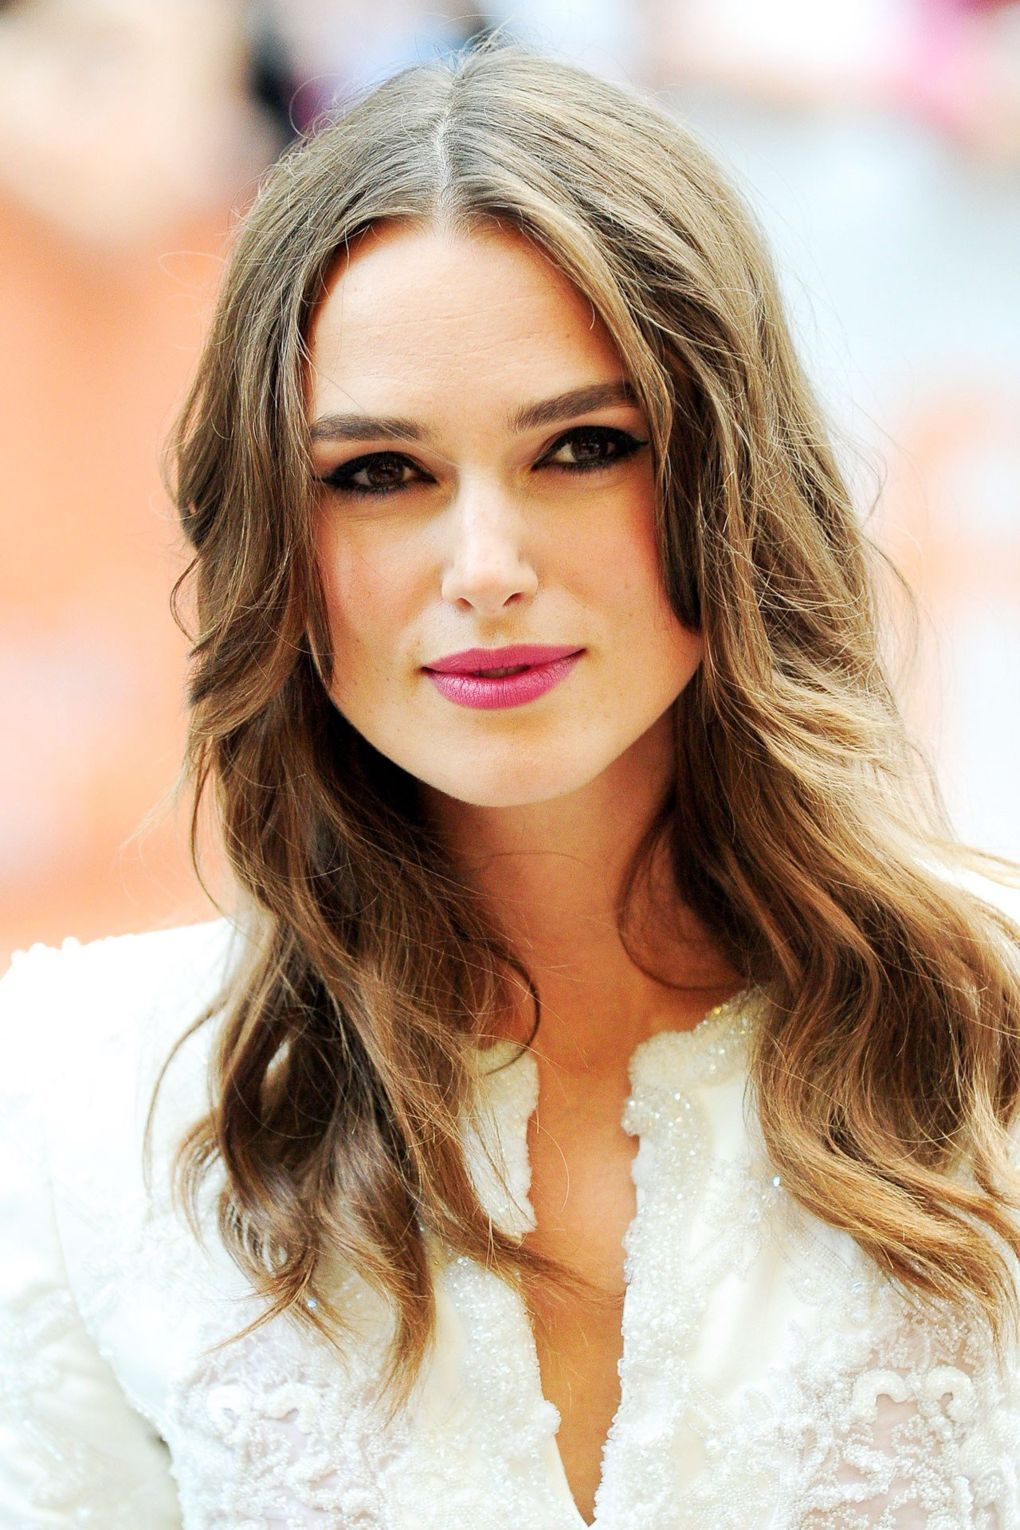 Keira Knightley (born 1985) Keira Knightley (born 1985) new pictures